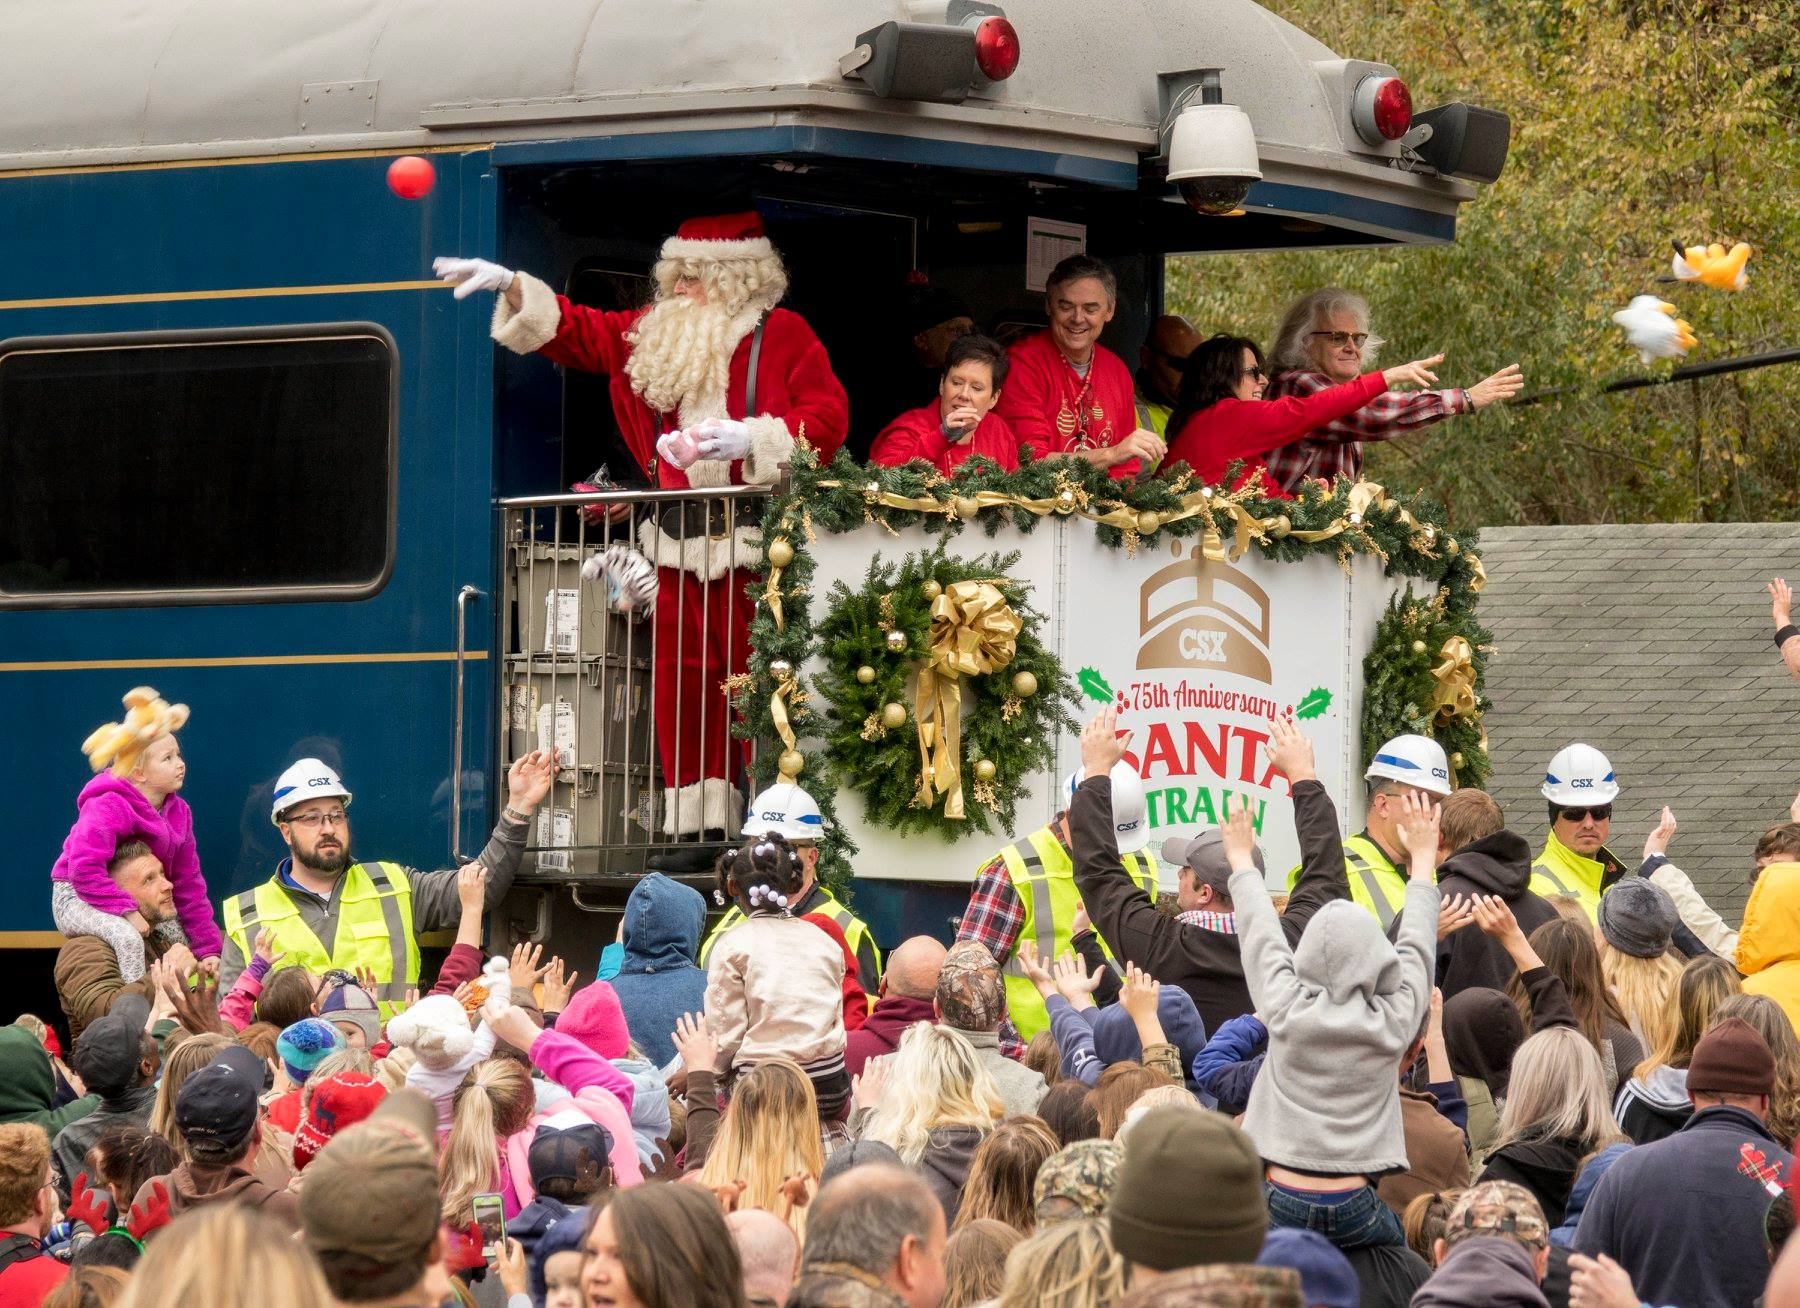 CSX Santa Train to feature country duo as special guests